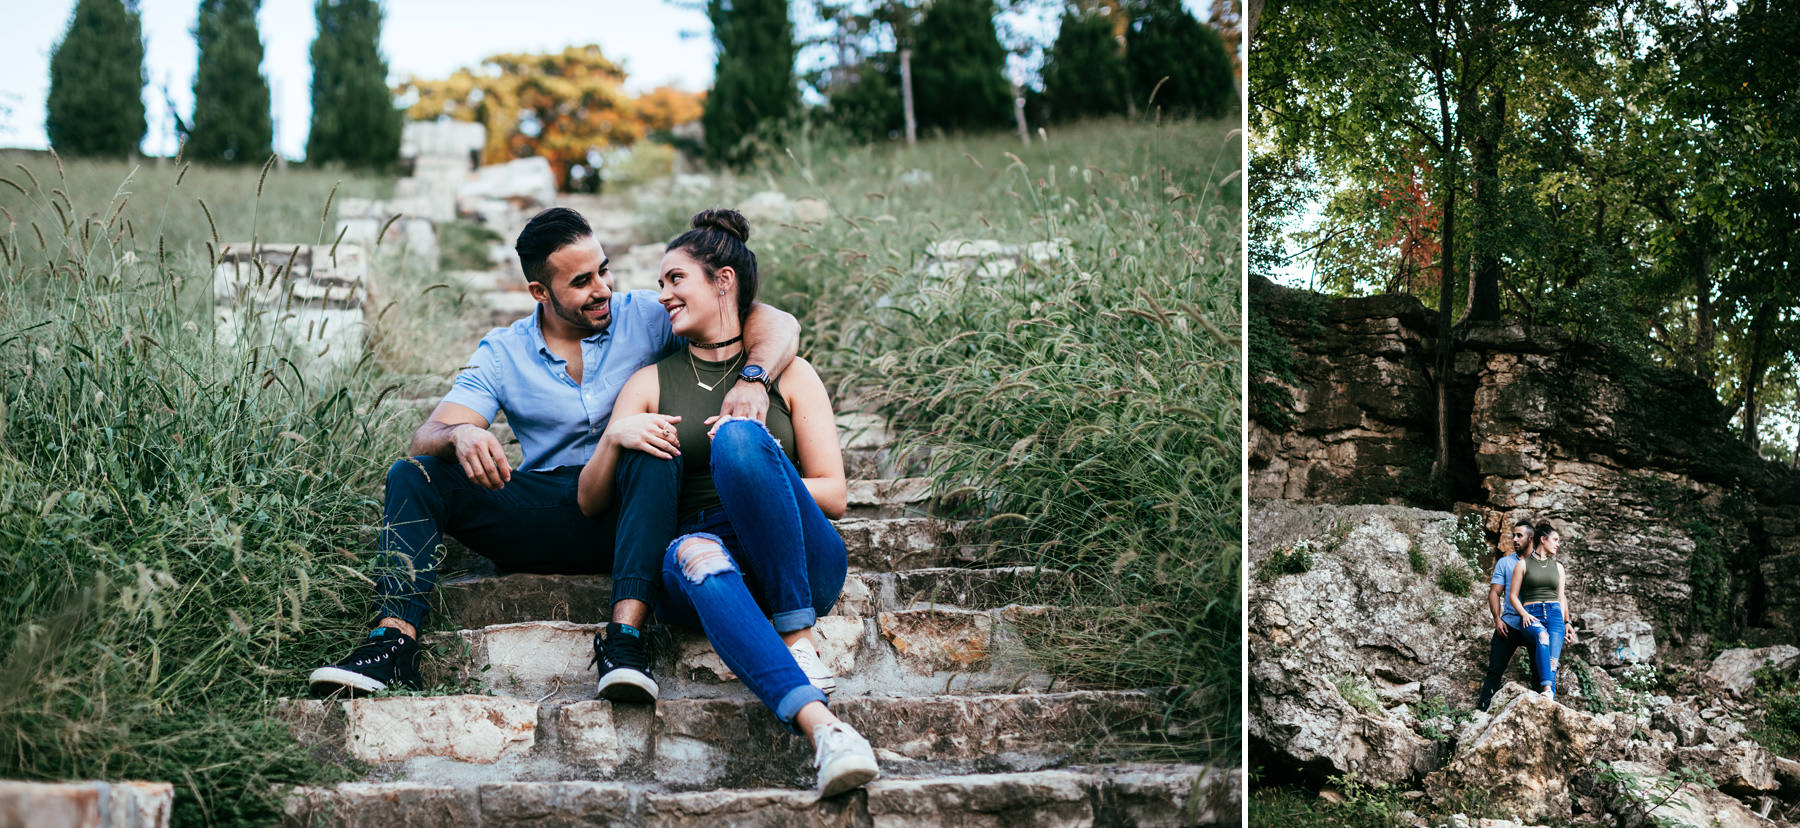 242_Penn Valley Park Engagement Session Kansas City, Missouri_Kindling Wedding Photography.JPG